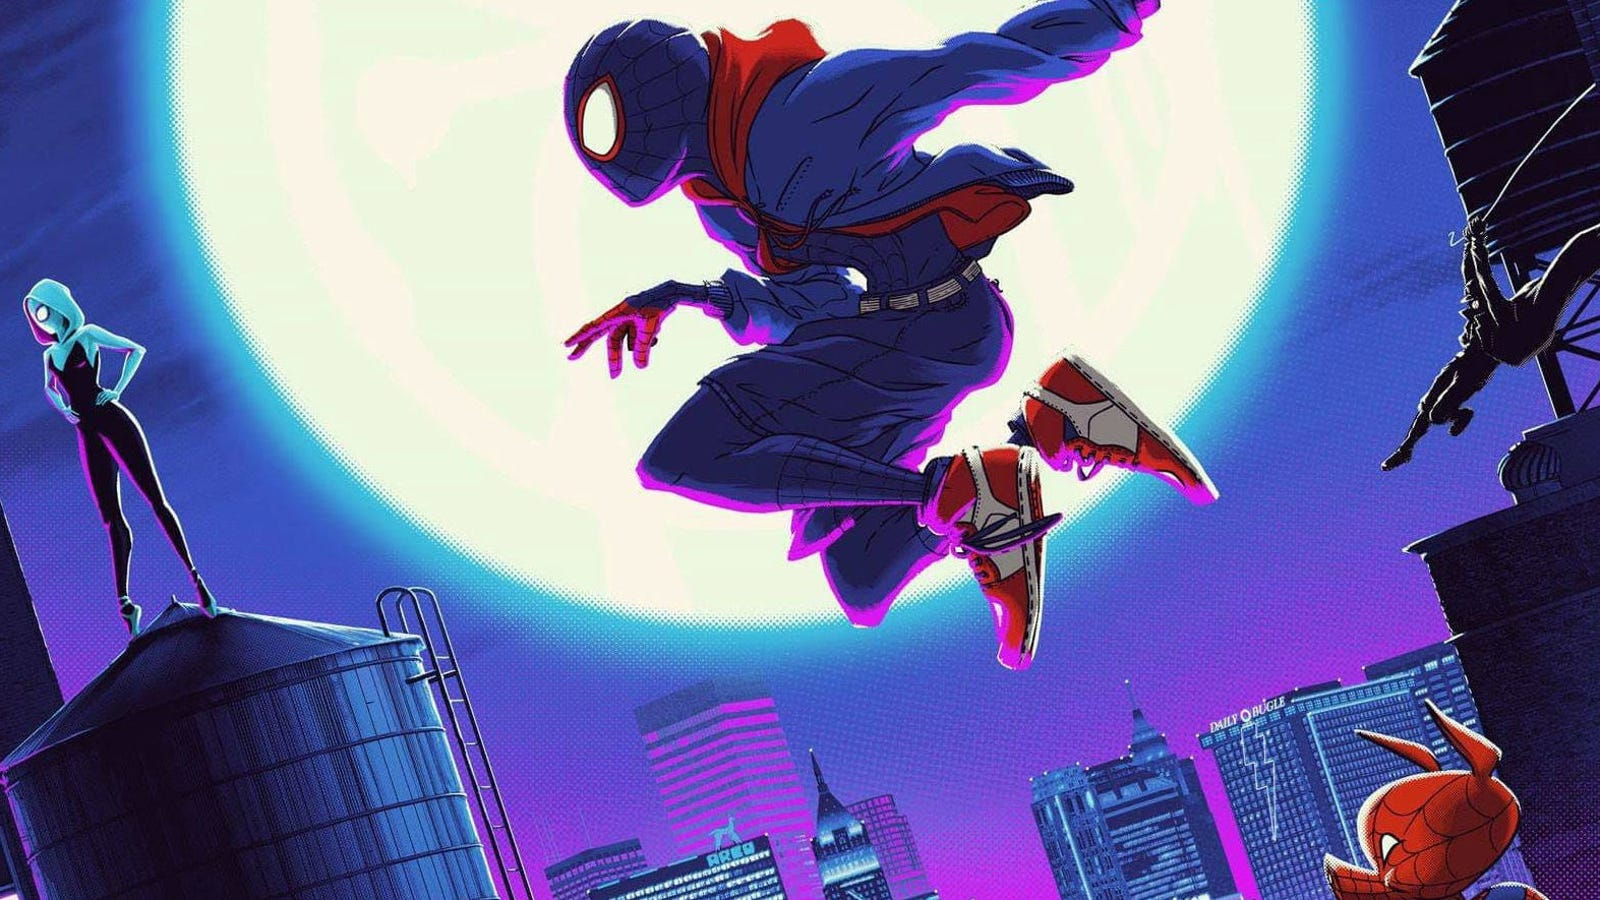 Into The Spider Verse X Wallpaper Iwallpaper: Matt Ferguson Spider-Man Into The Spider-Verse Poster Coming